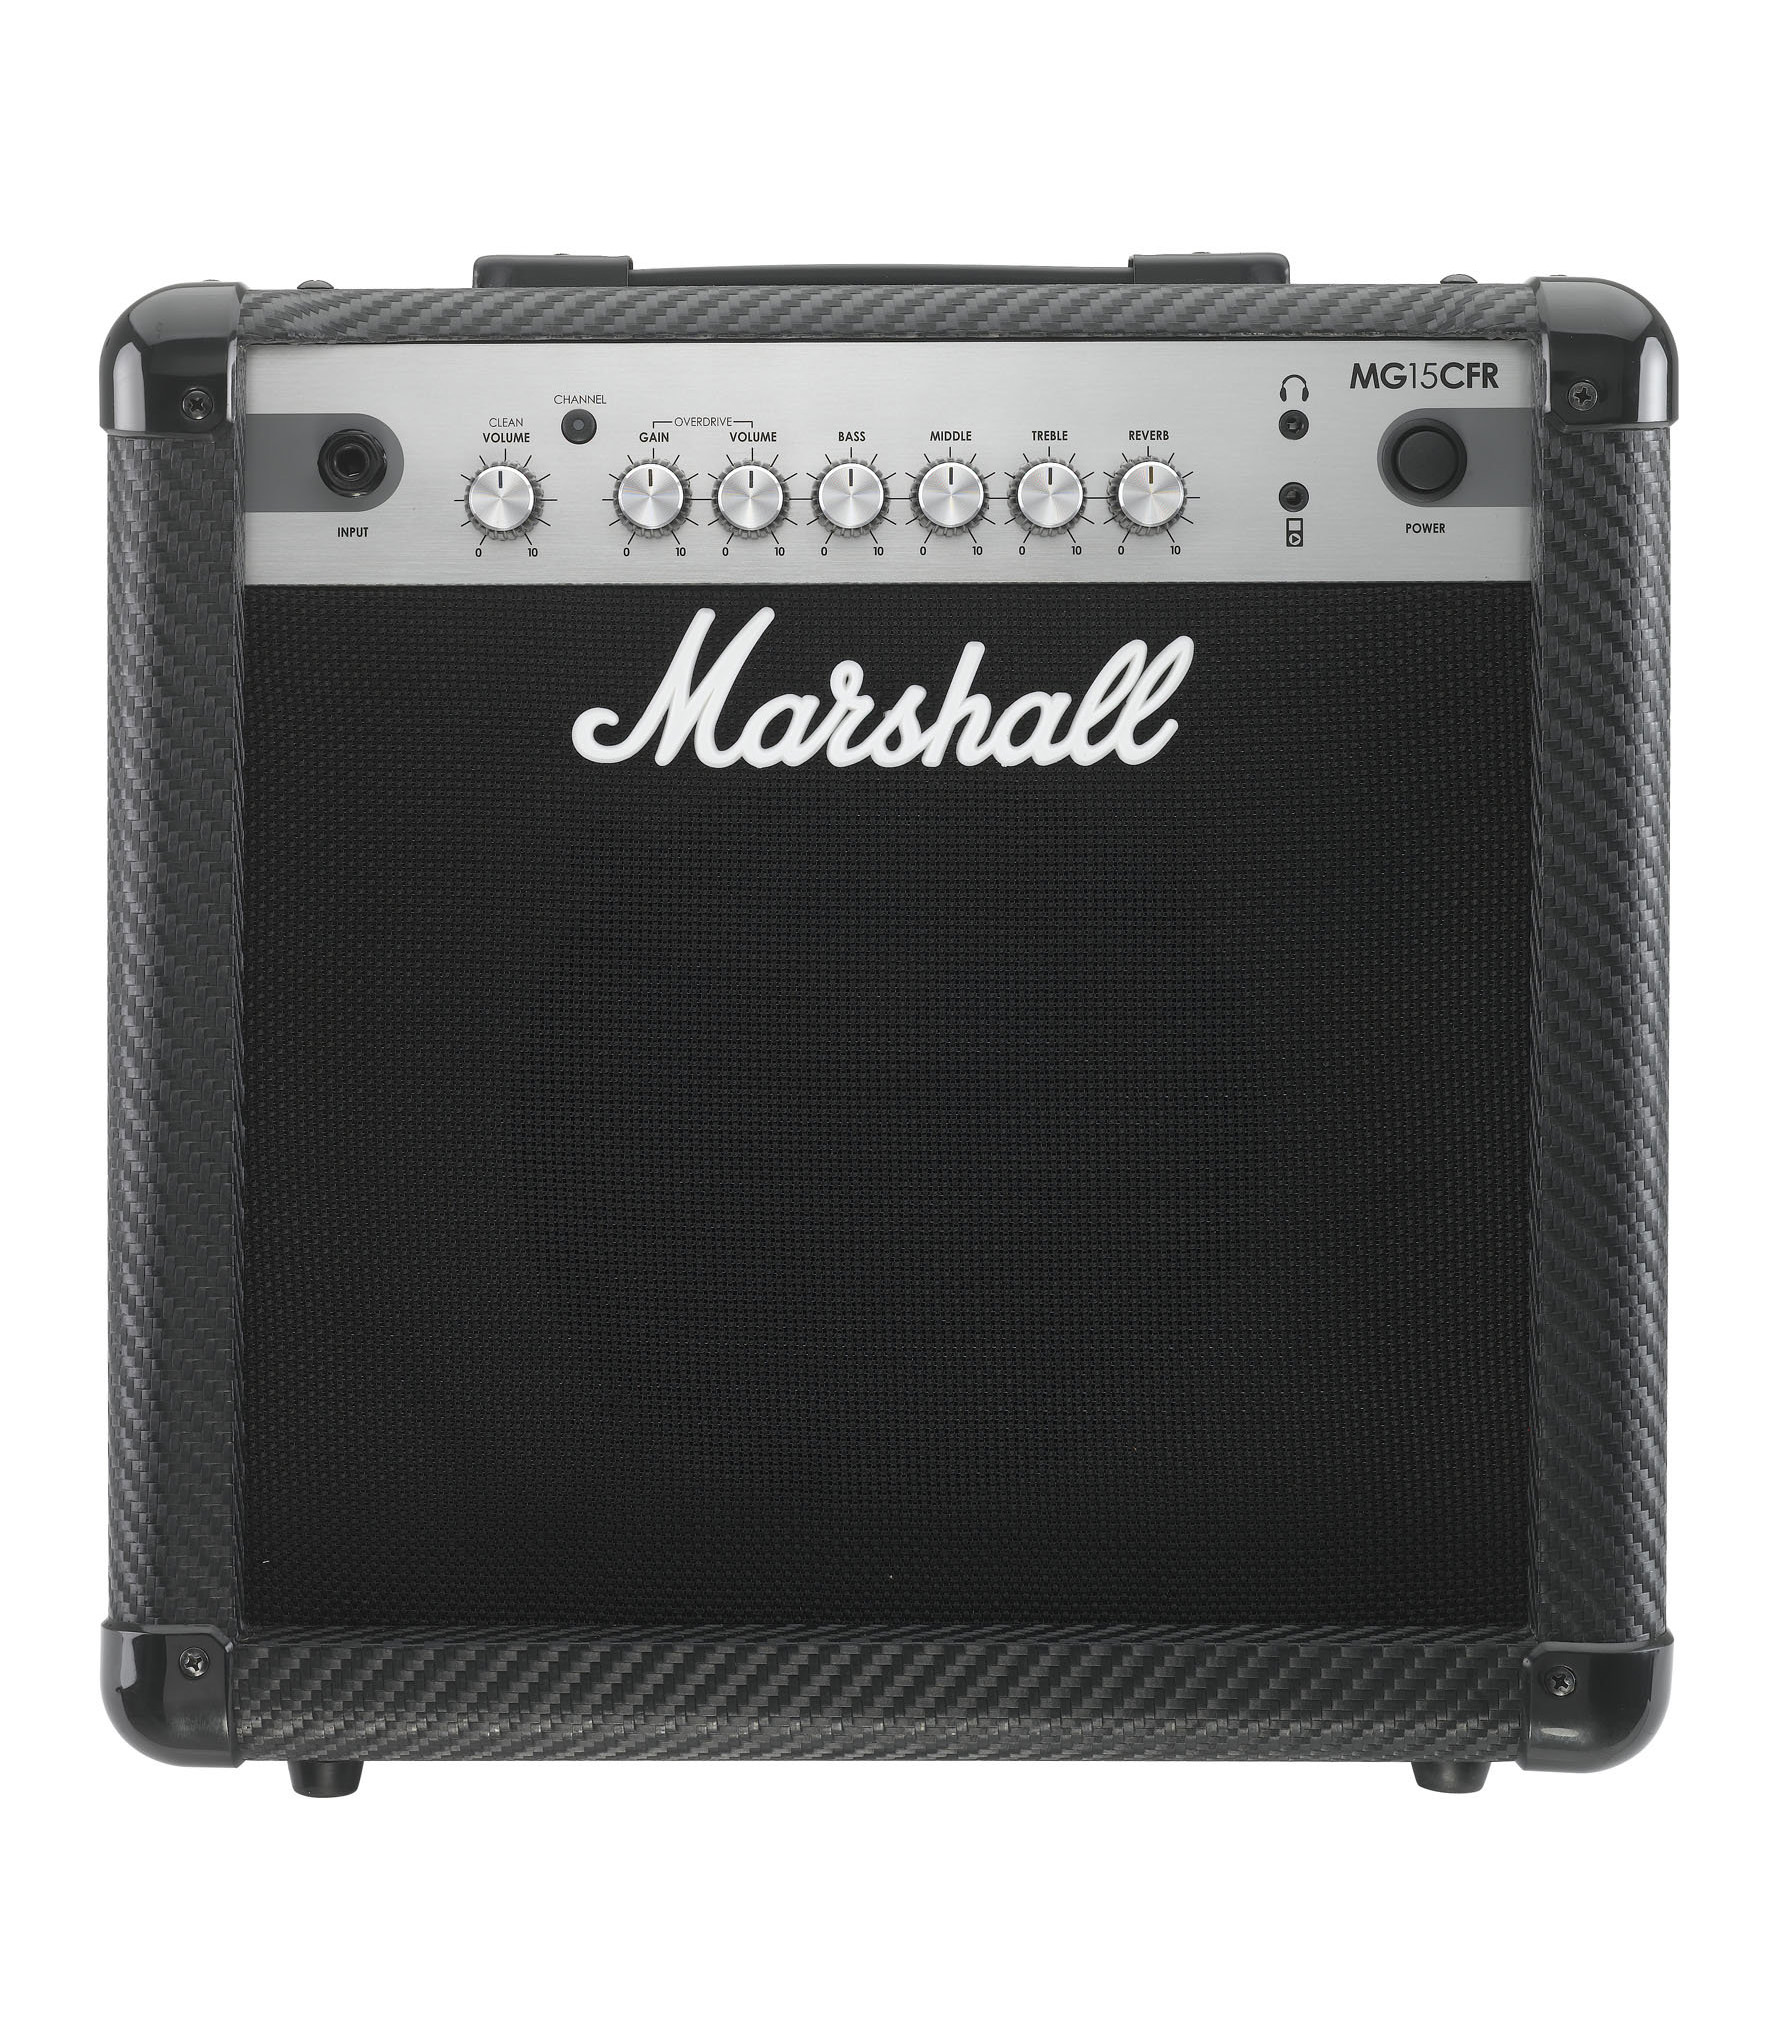 MG15CFR Marshall Solid state Guitar Amp 2 Channel